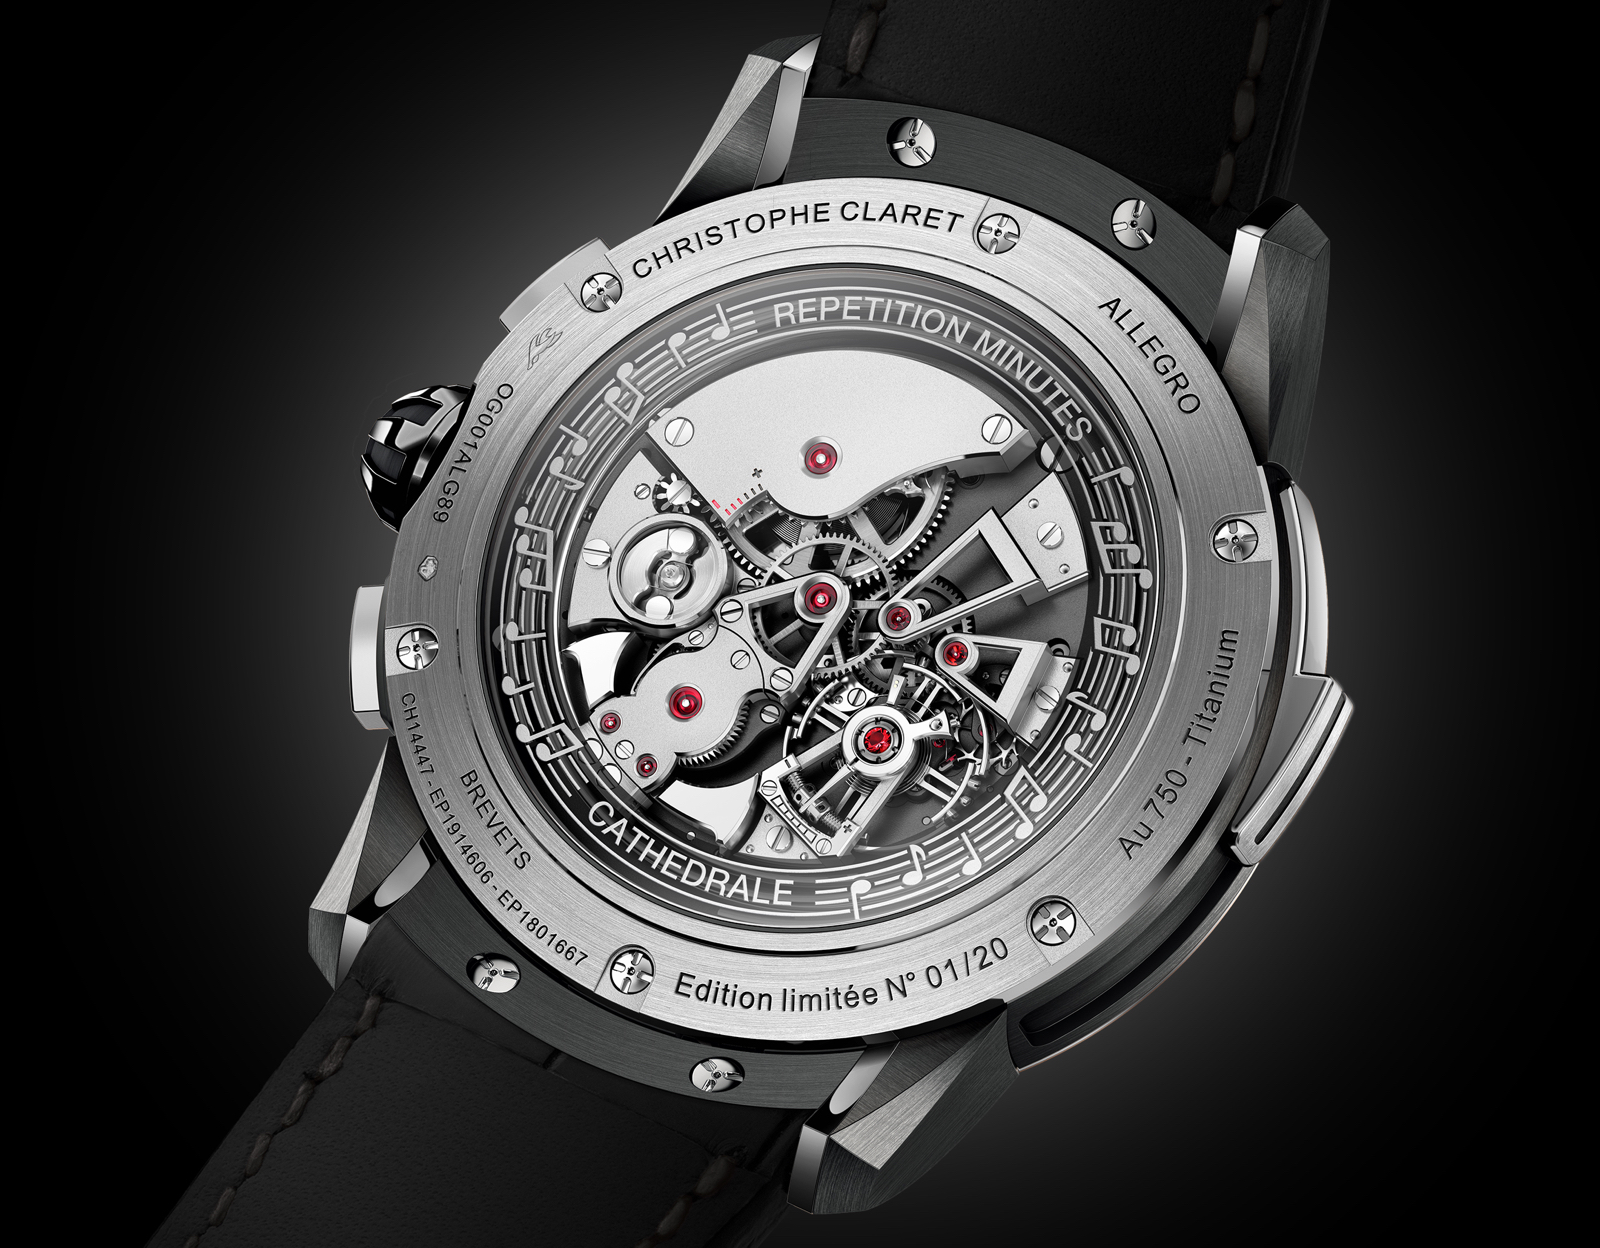 Allegro Christophe Claret back